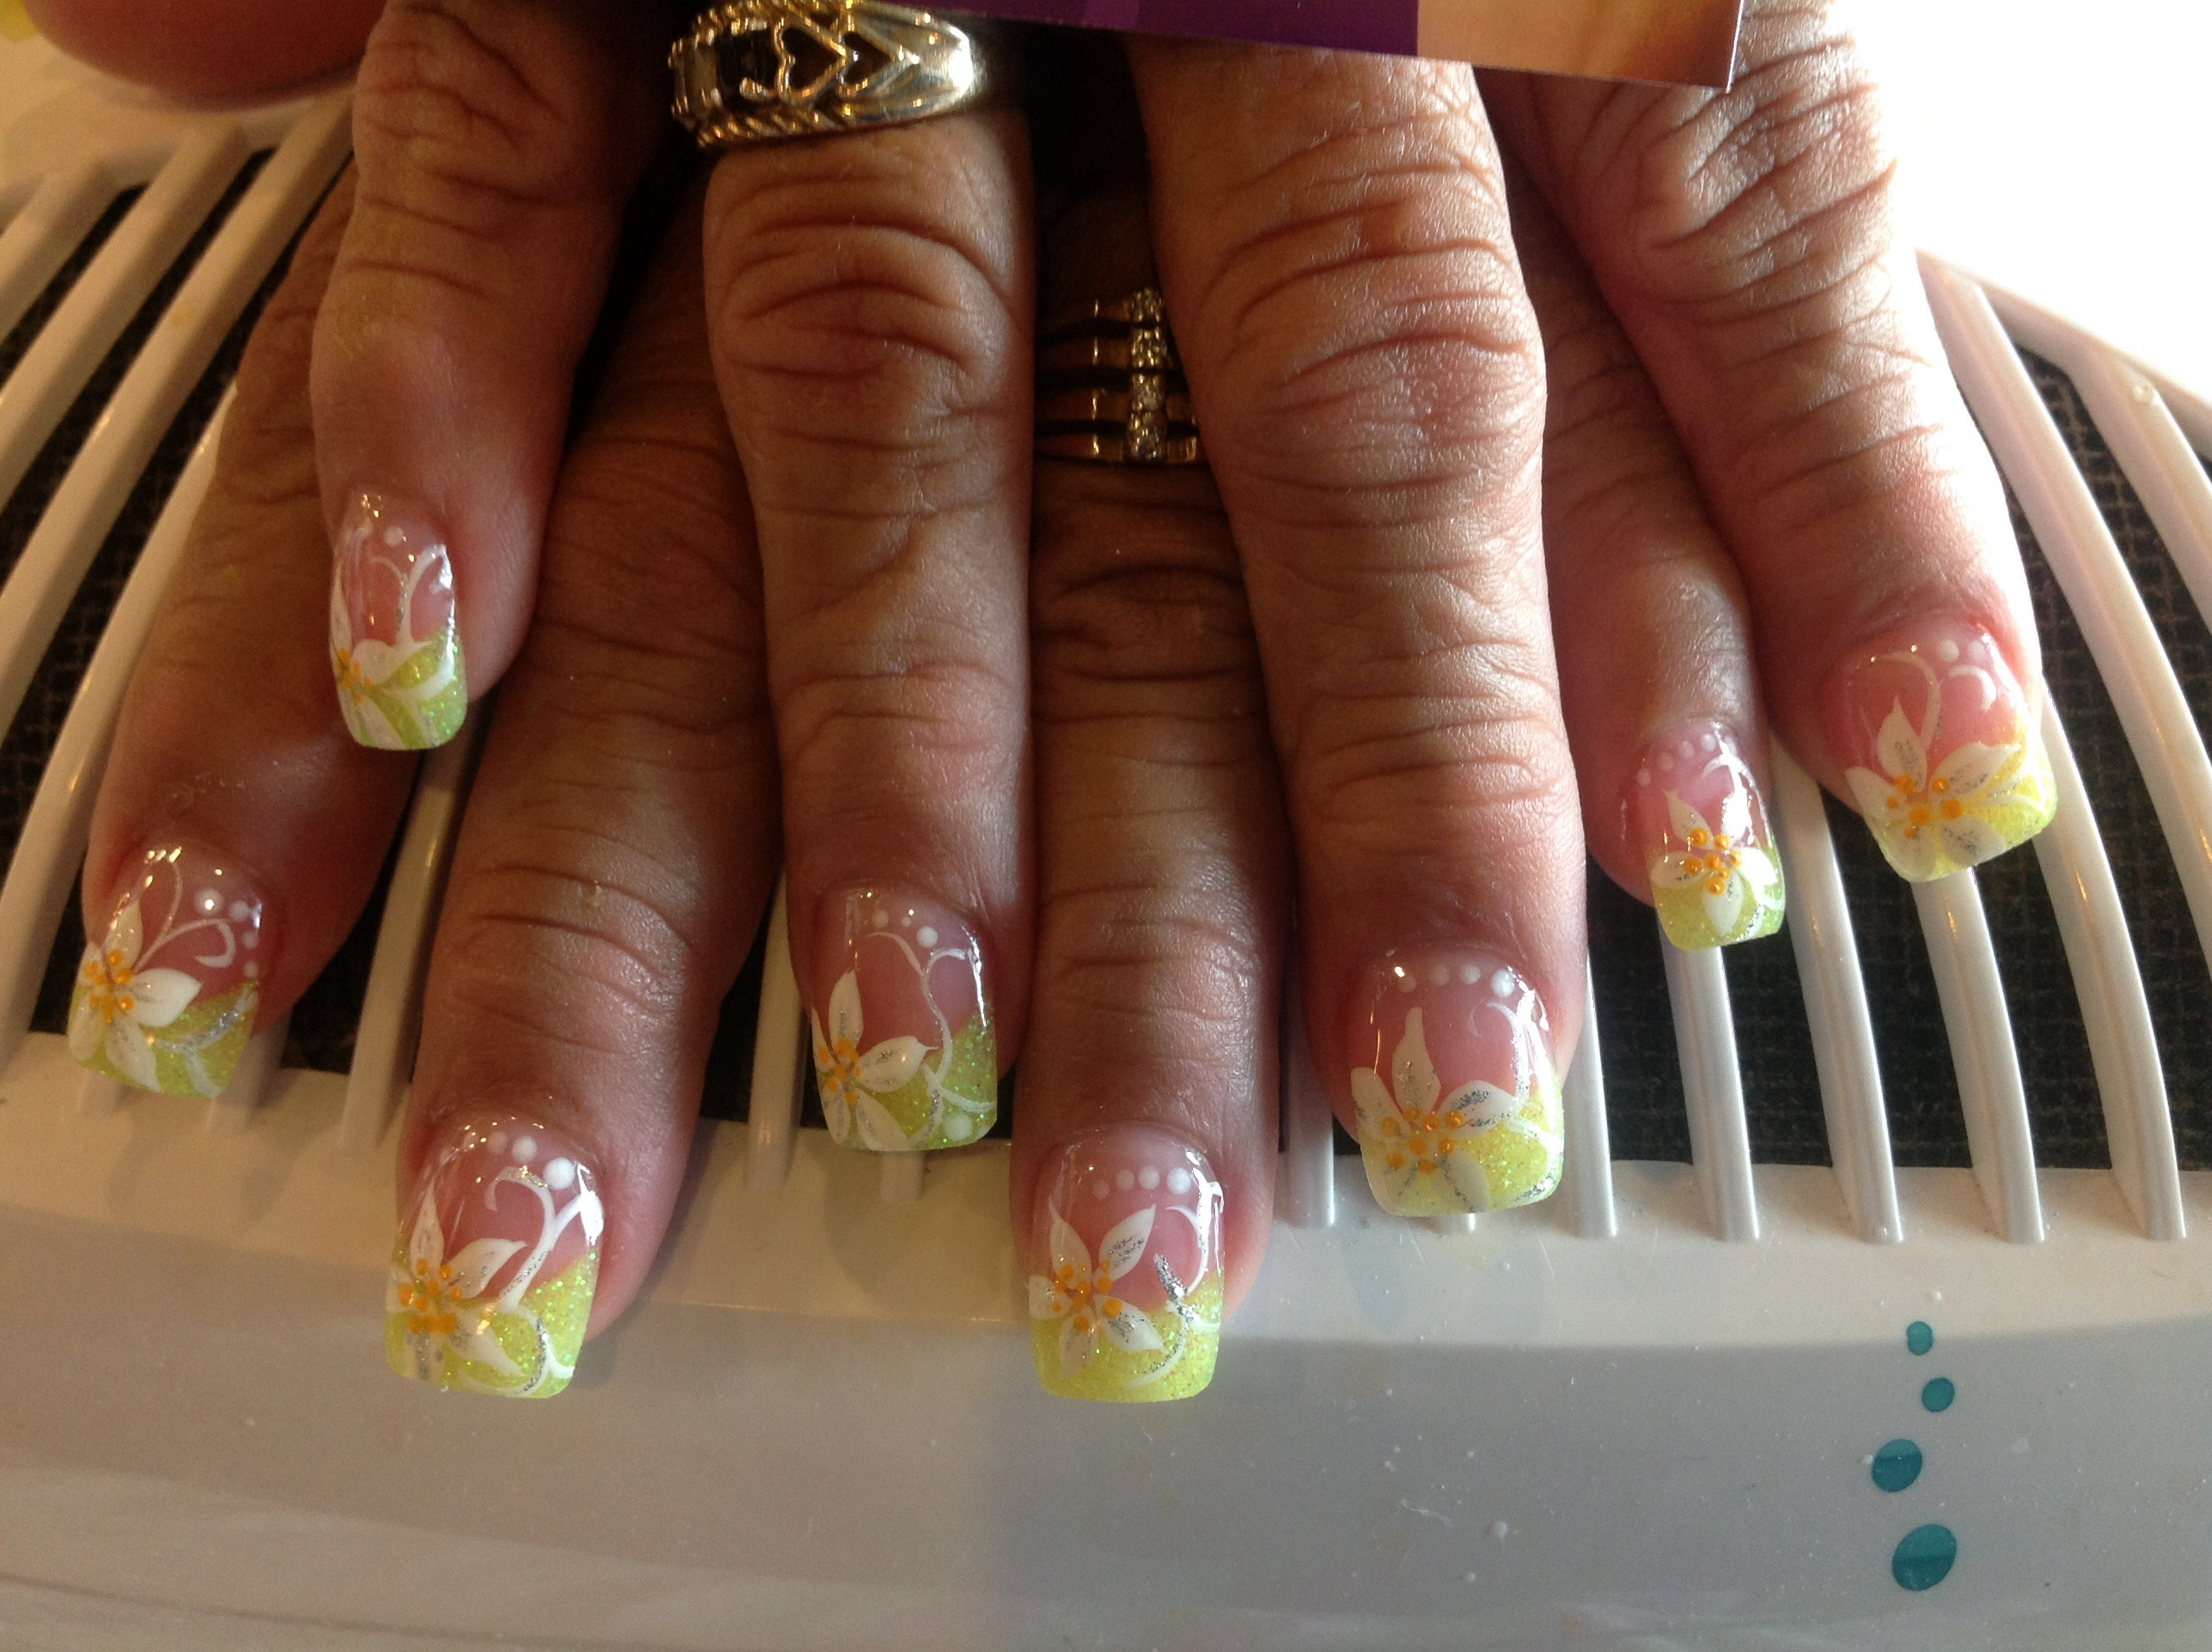 Best Nails & Spa 10101 Slide Rd Ste 300, Lubbock, TX 79424 - YP.com